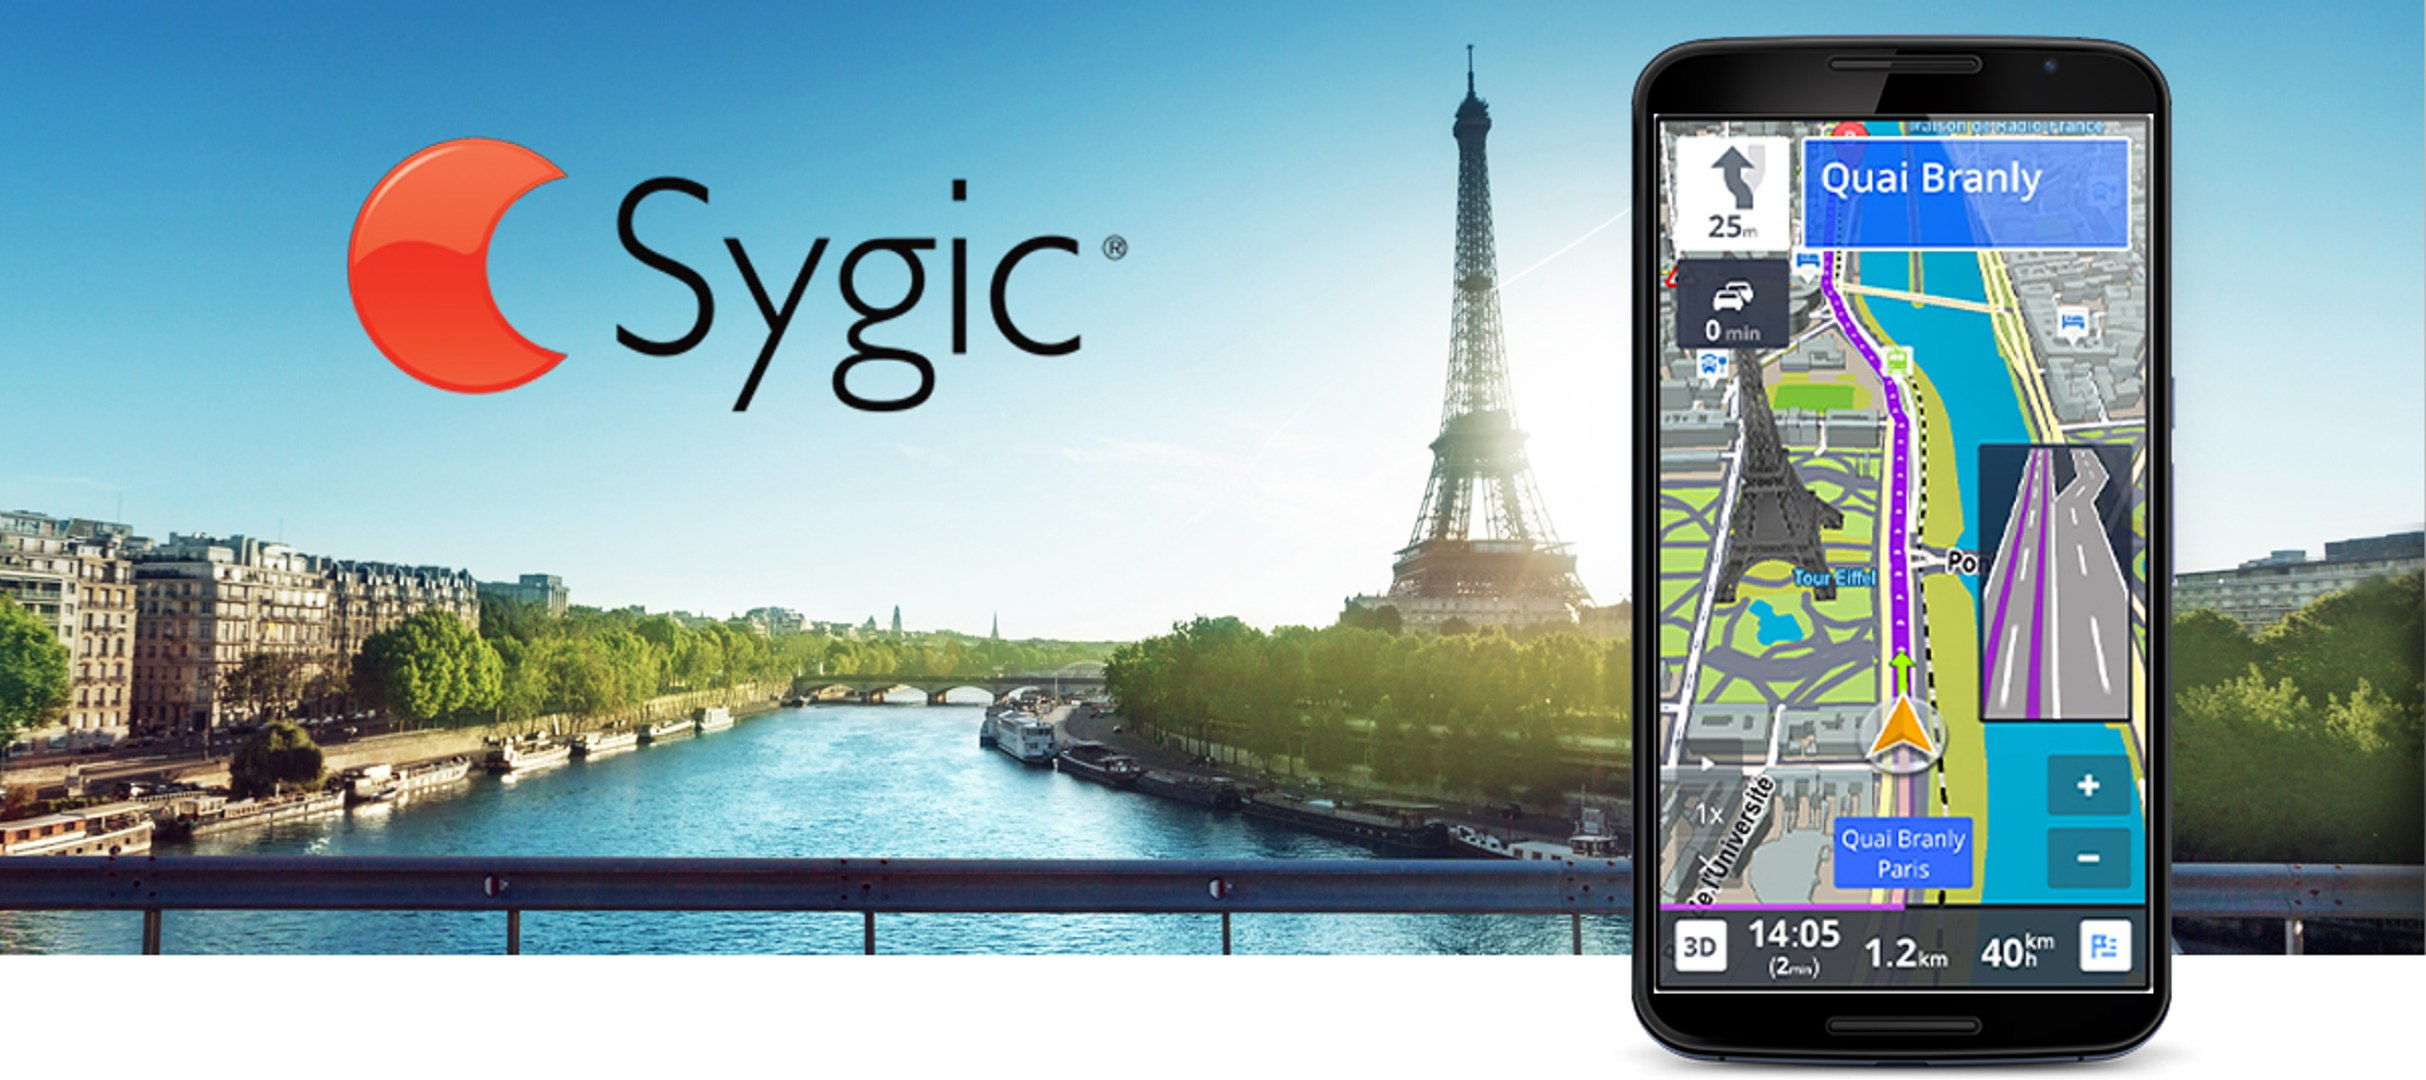 Download Latest Sygic Cracked Version 15 3 3 For Android